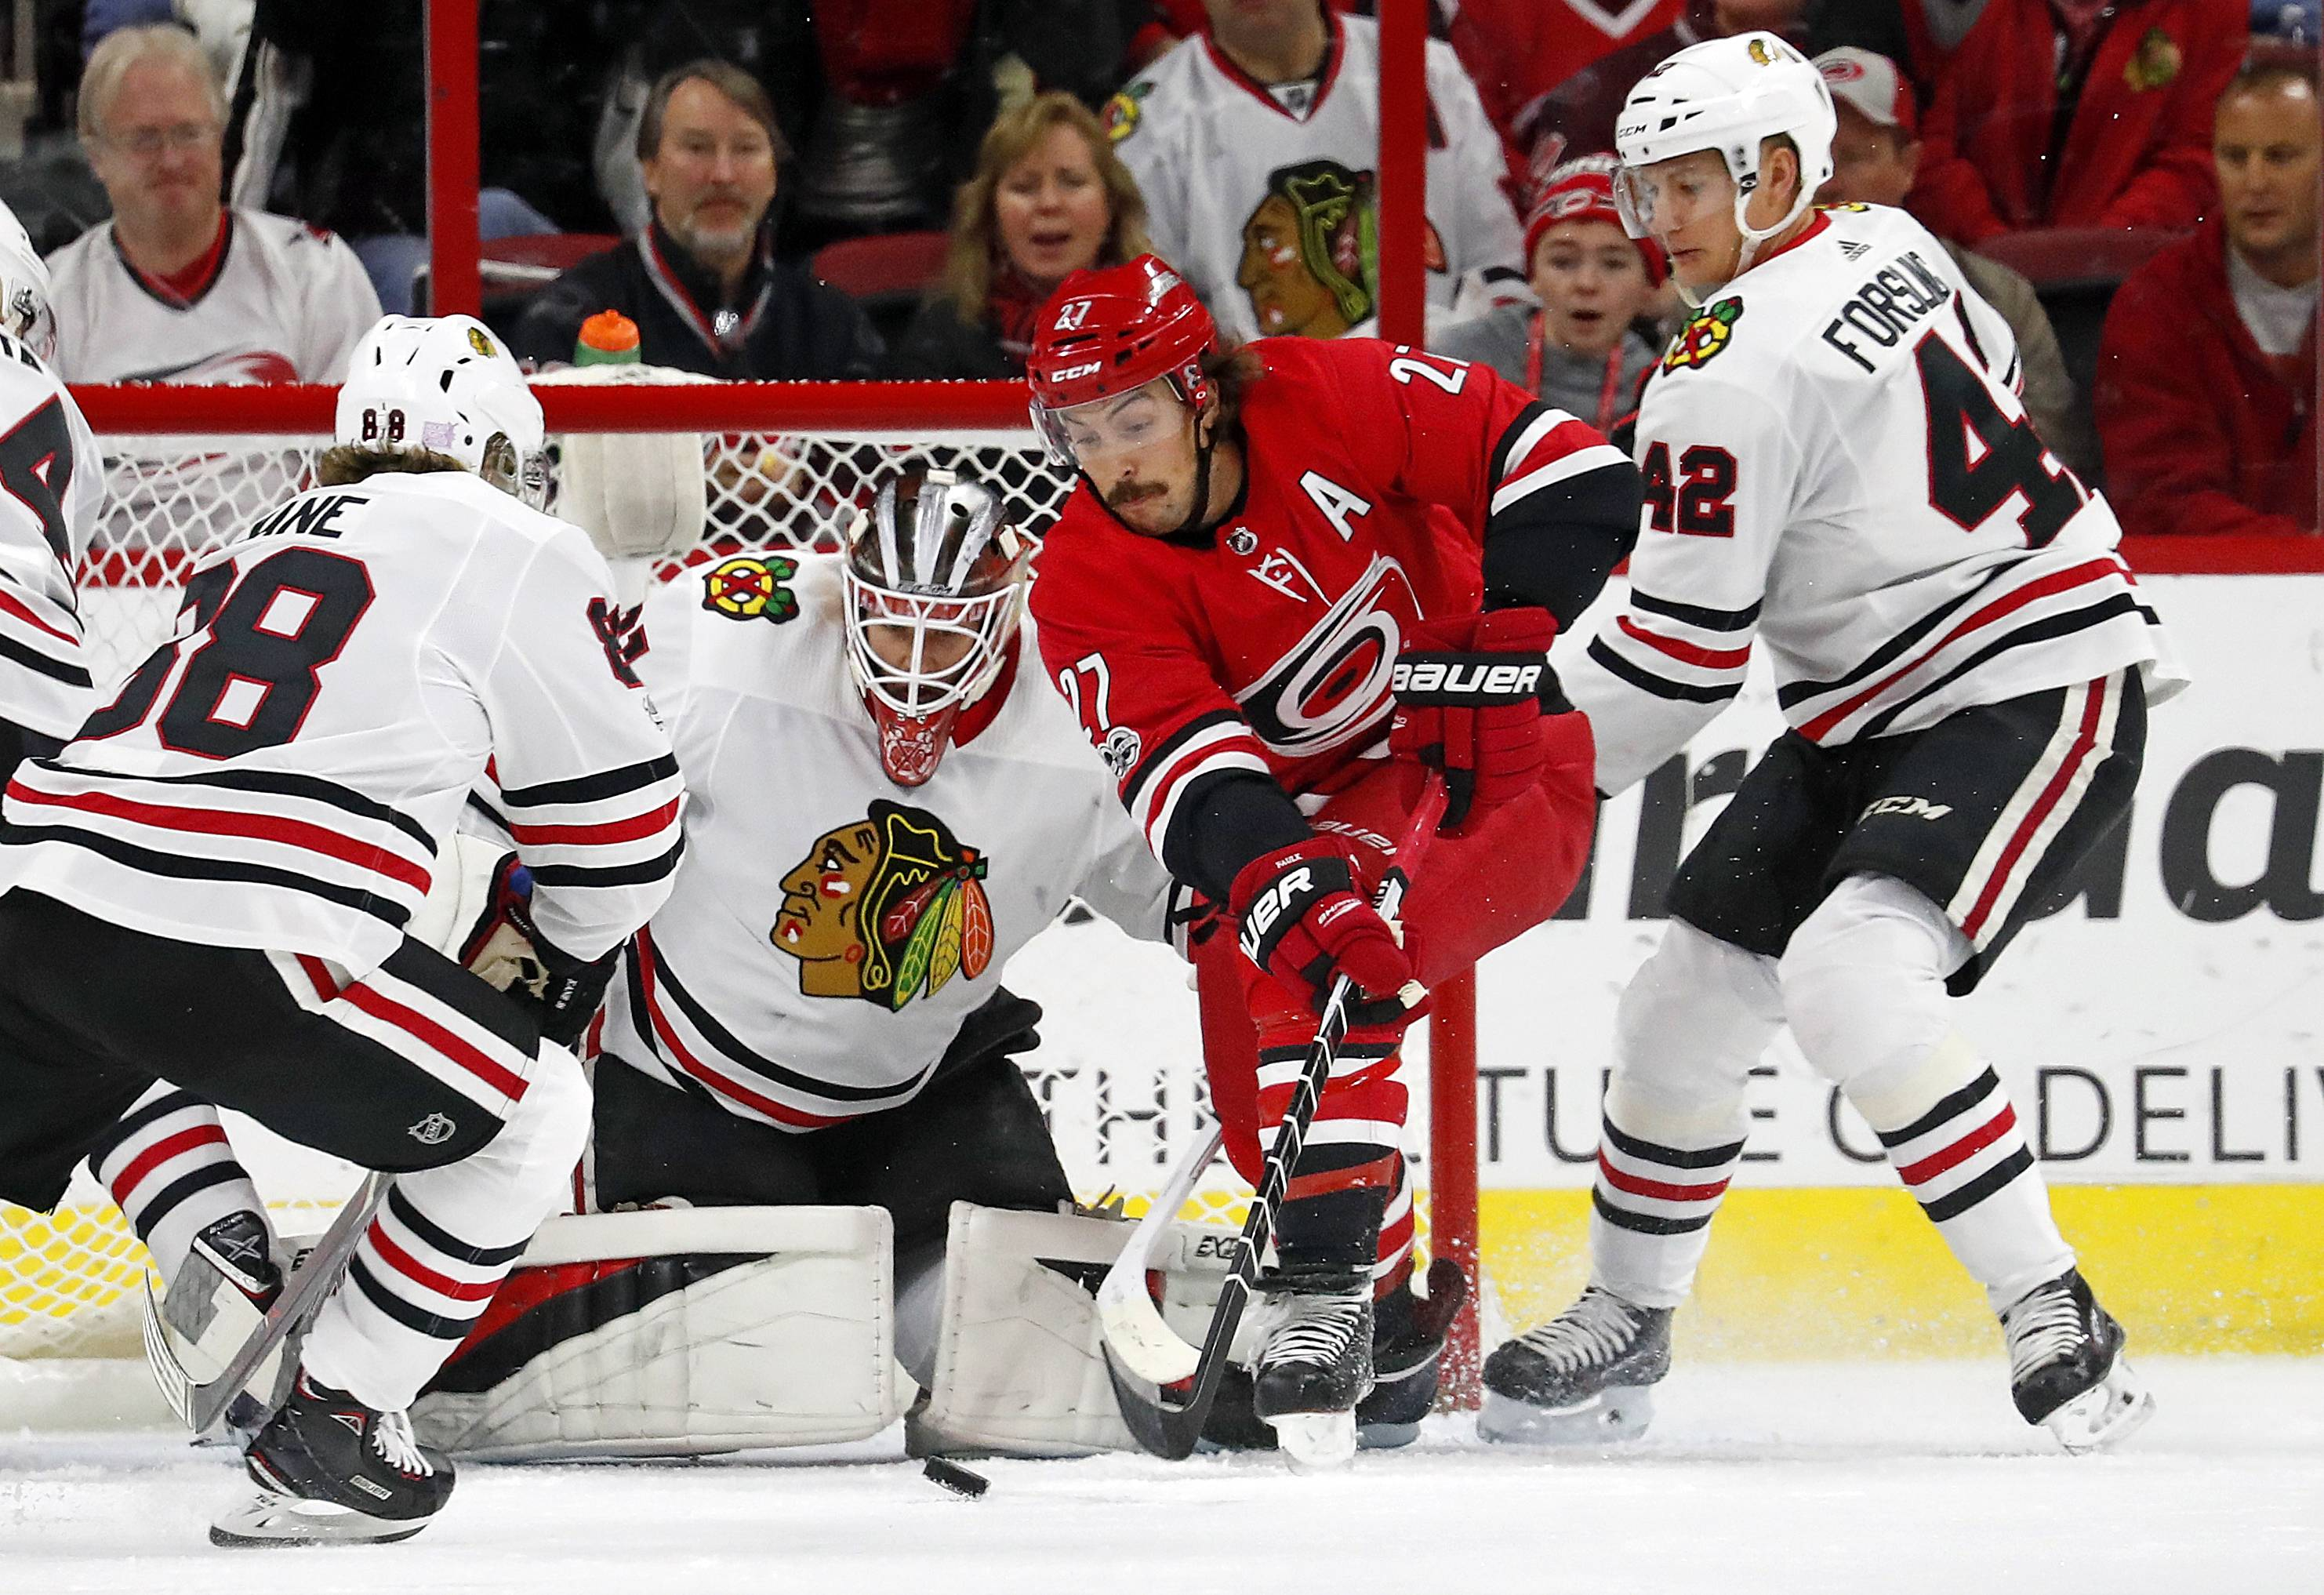 Carolina Hurricanes' Justin Faulk (27) works the puck in front of Chicago Blackhawks' goalie Anton Forsberg (31) between Blackhawks' Patrick Kane (88) and Gustav Forsling (42) during the first period of an NHL hockey game, Saturday, Nov. 11, 2017, in Raleigh, N.C.